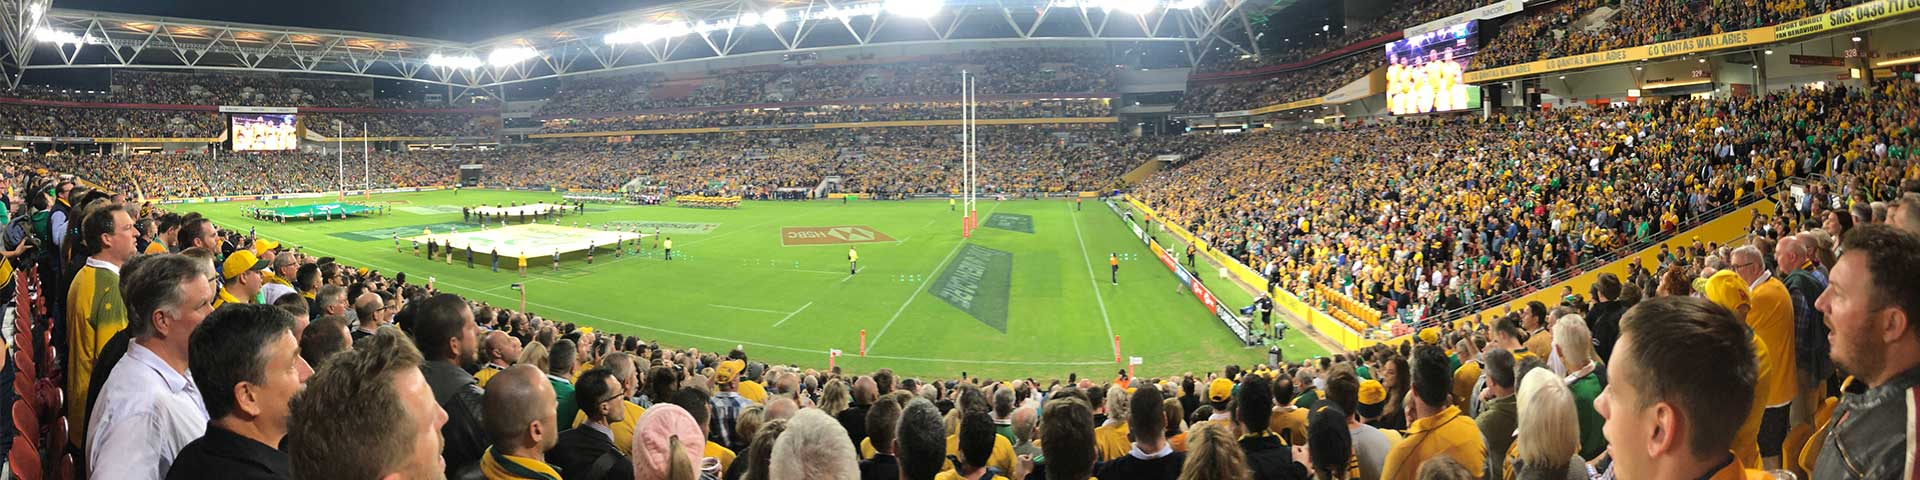 Wallabies v Ireland at Suncorp Stadium